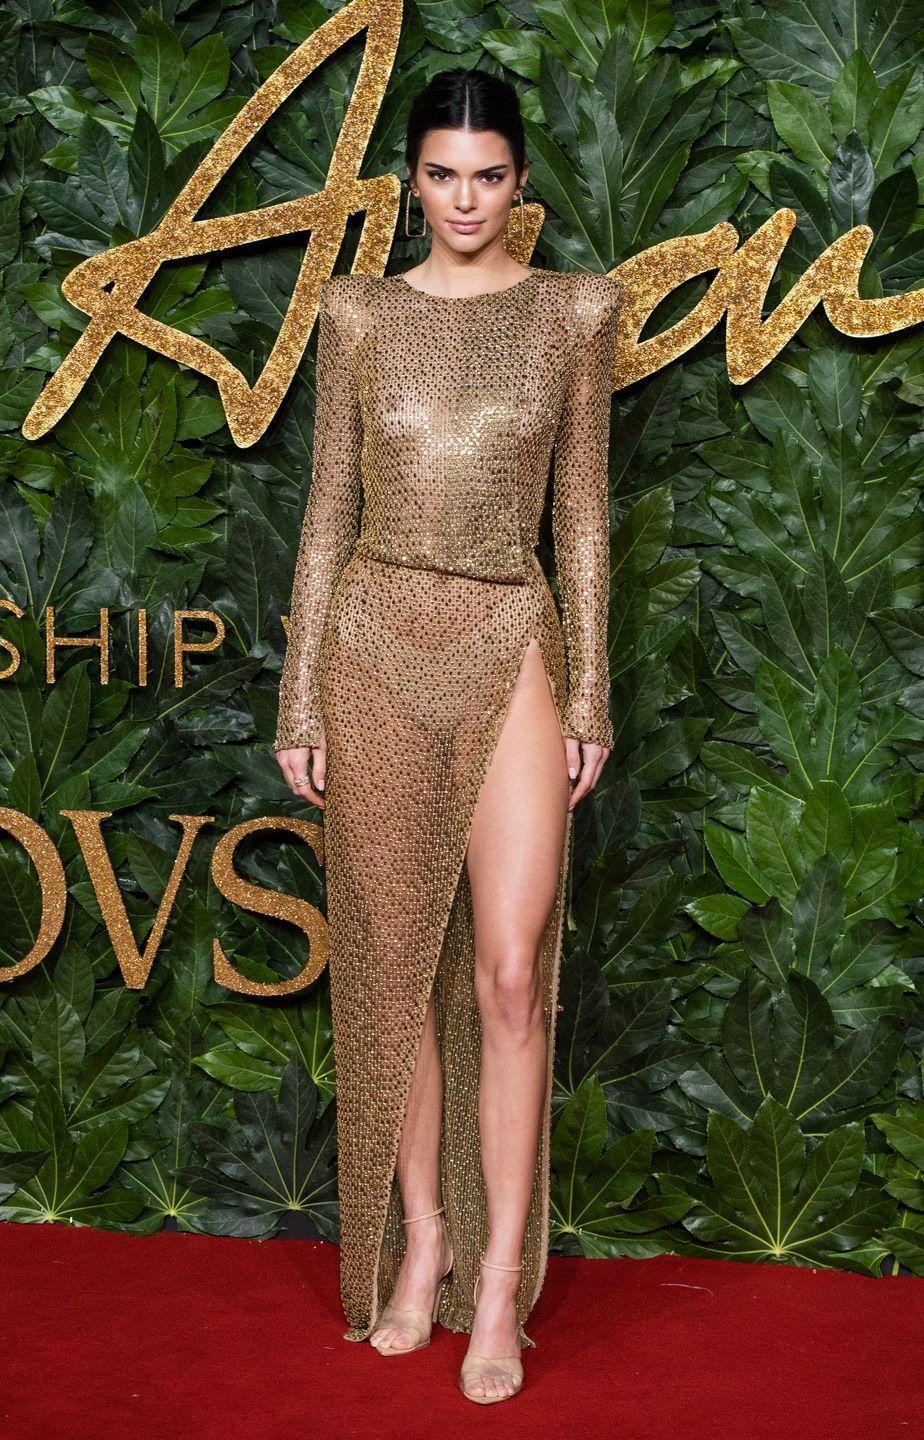 <p>I would go nips out dripped in gold on the red carpet too, if I were Kendall Jenner. </p>